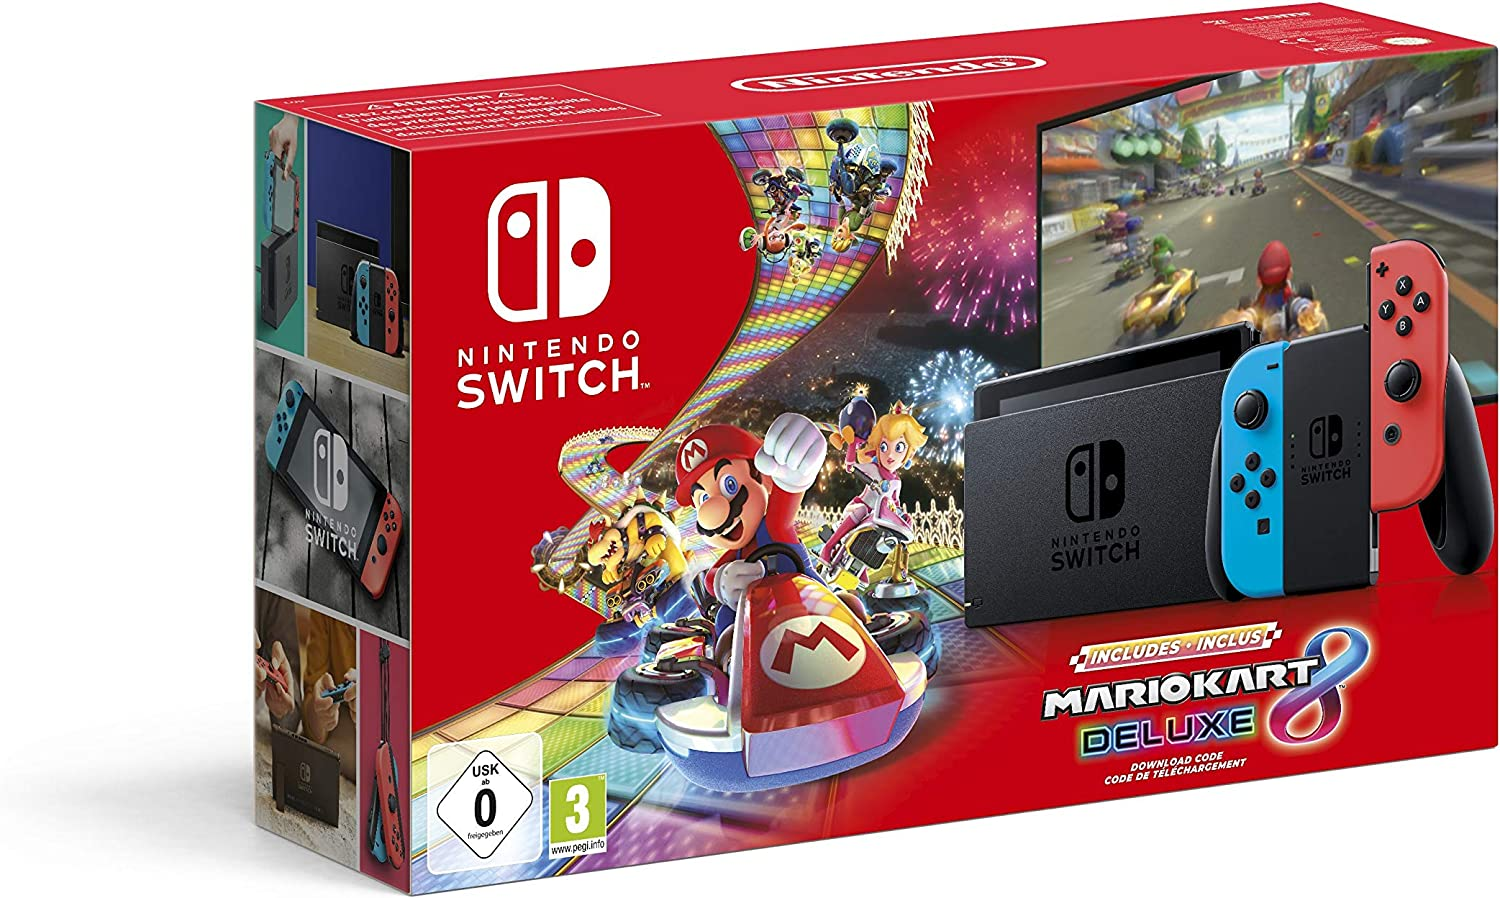 Nintendo Switch (Neon Red/Neon Blue) with Mario Kart 8 Deluxe ...